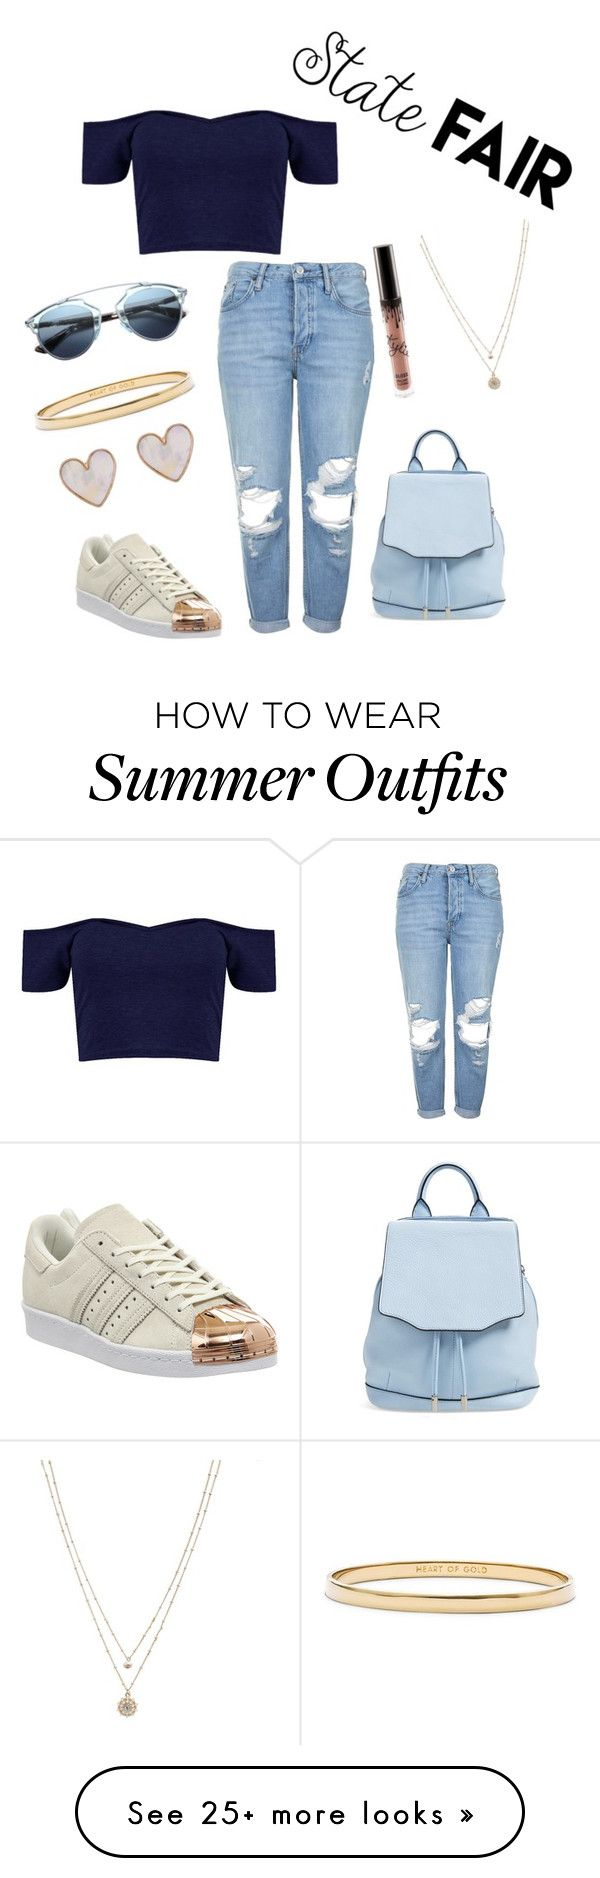 """the simple casual and easy state fair outfit"" by fashionlandfb on Polyvore featuring Topshop, rag & bone, adidas, Christian Dior, Kate Spade, LC Lauren Conrad, New Look, statefair and summerdate"